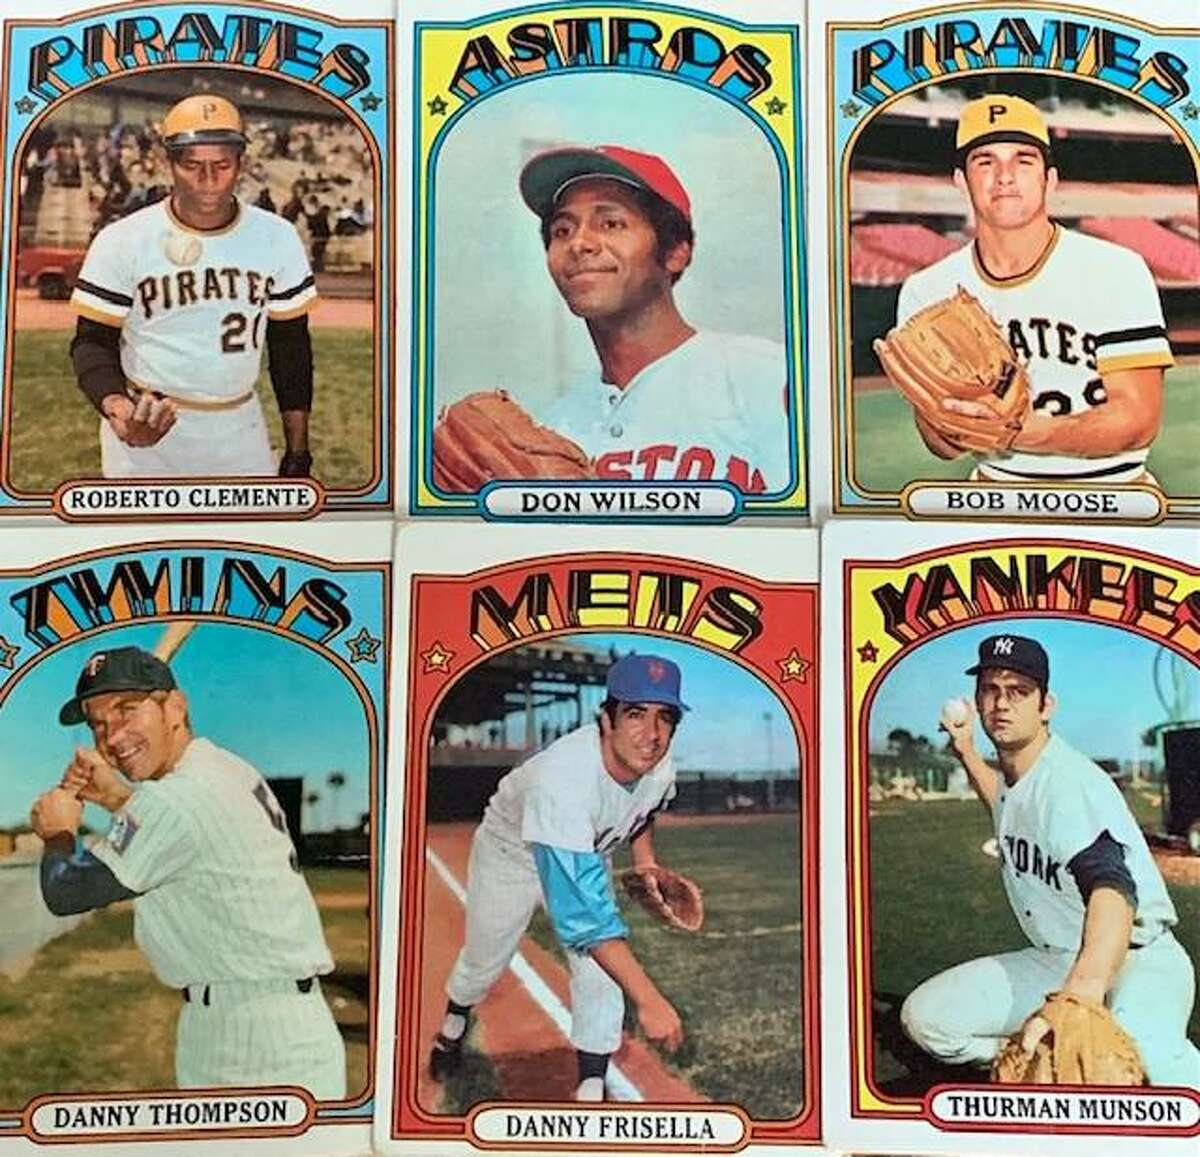 Pirates great Roberto Clemente was the first of six players from the 1972 Topps baseball card set to die while still active in the major leagues.